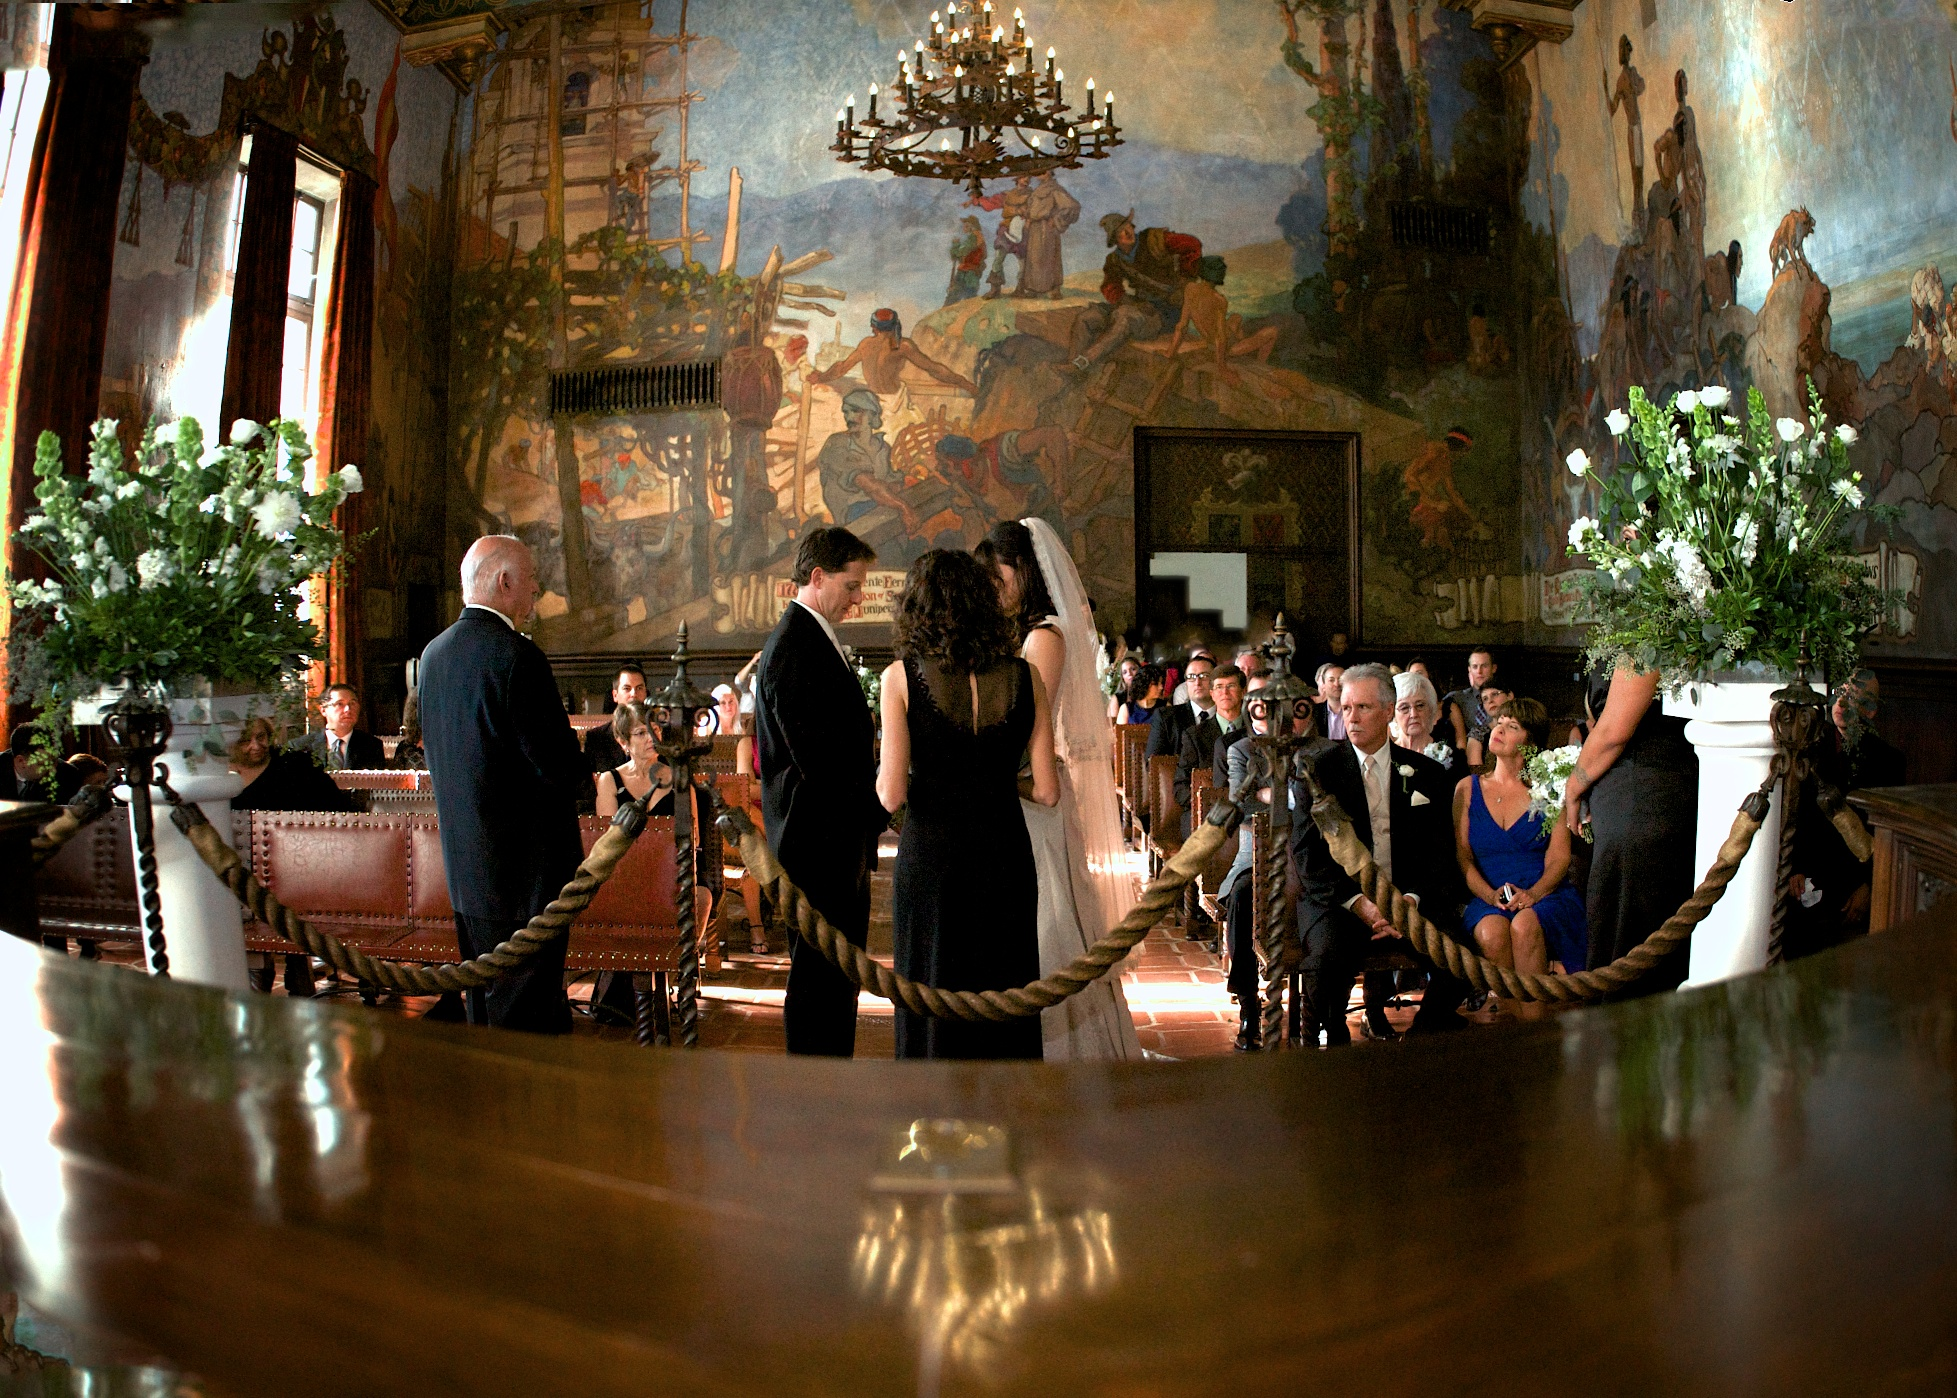 Santa barbara courthouse mural room wedding the for Mural room santa barbara courthouse